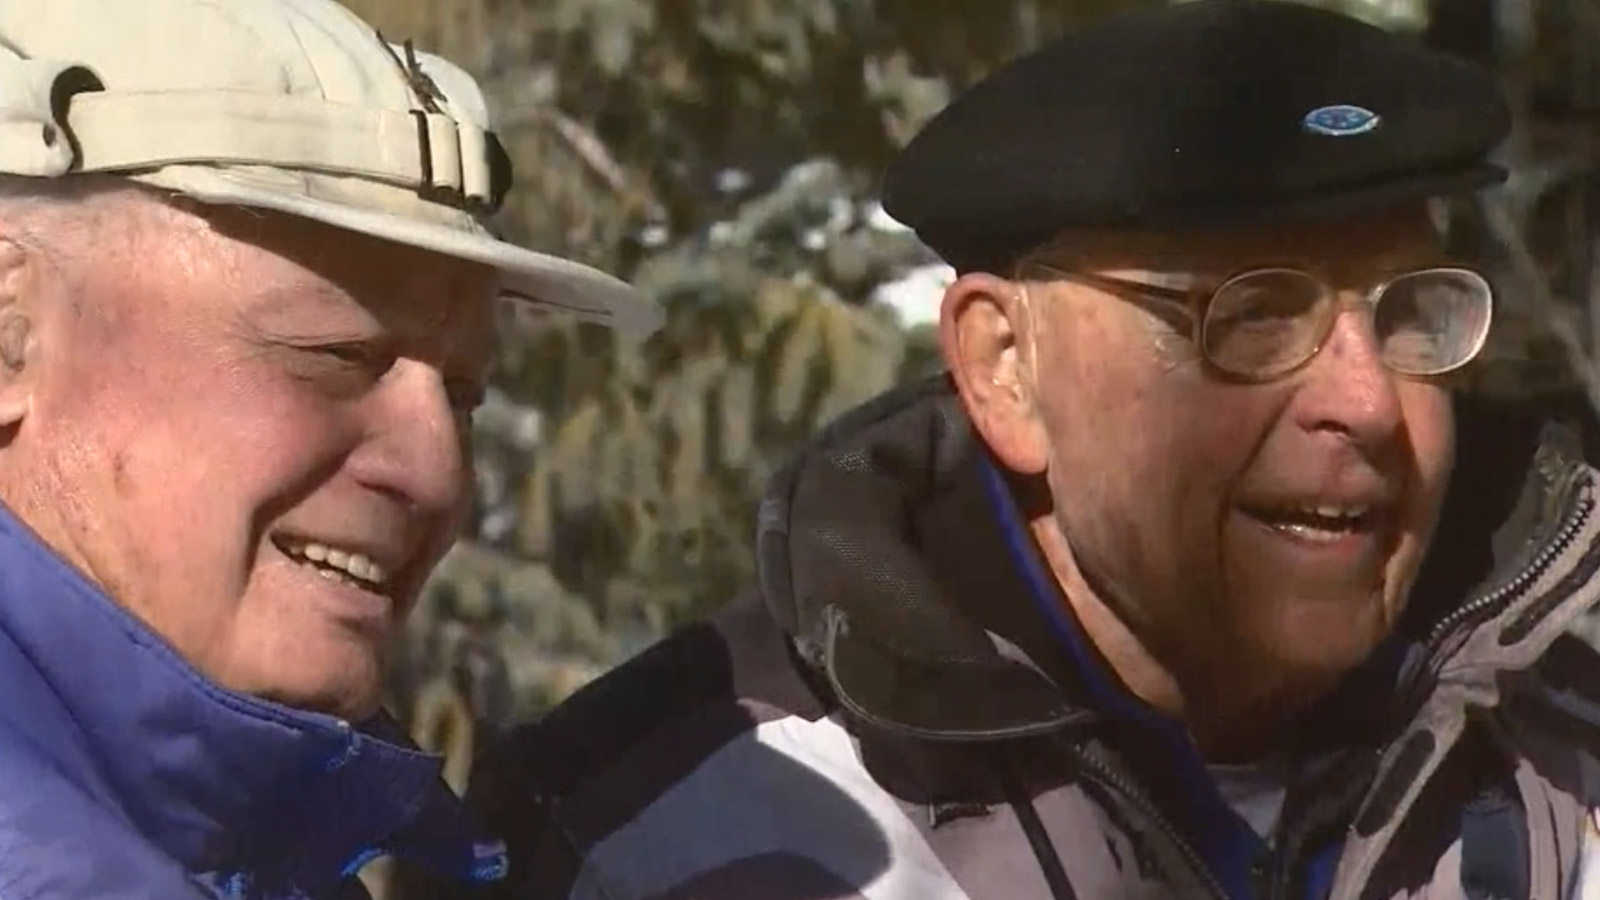 Members of the 10th Mountain Division reunited on the slopes (credit: CBS)